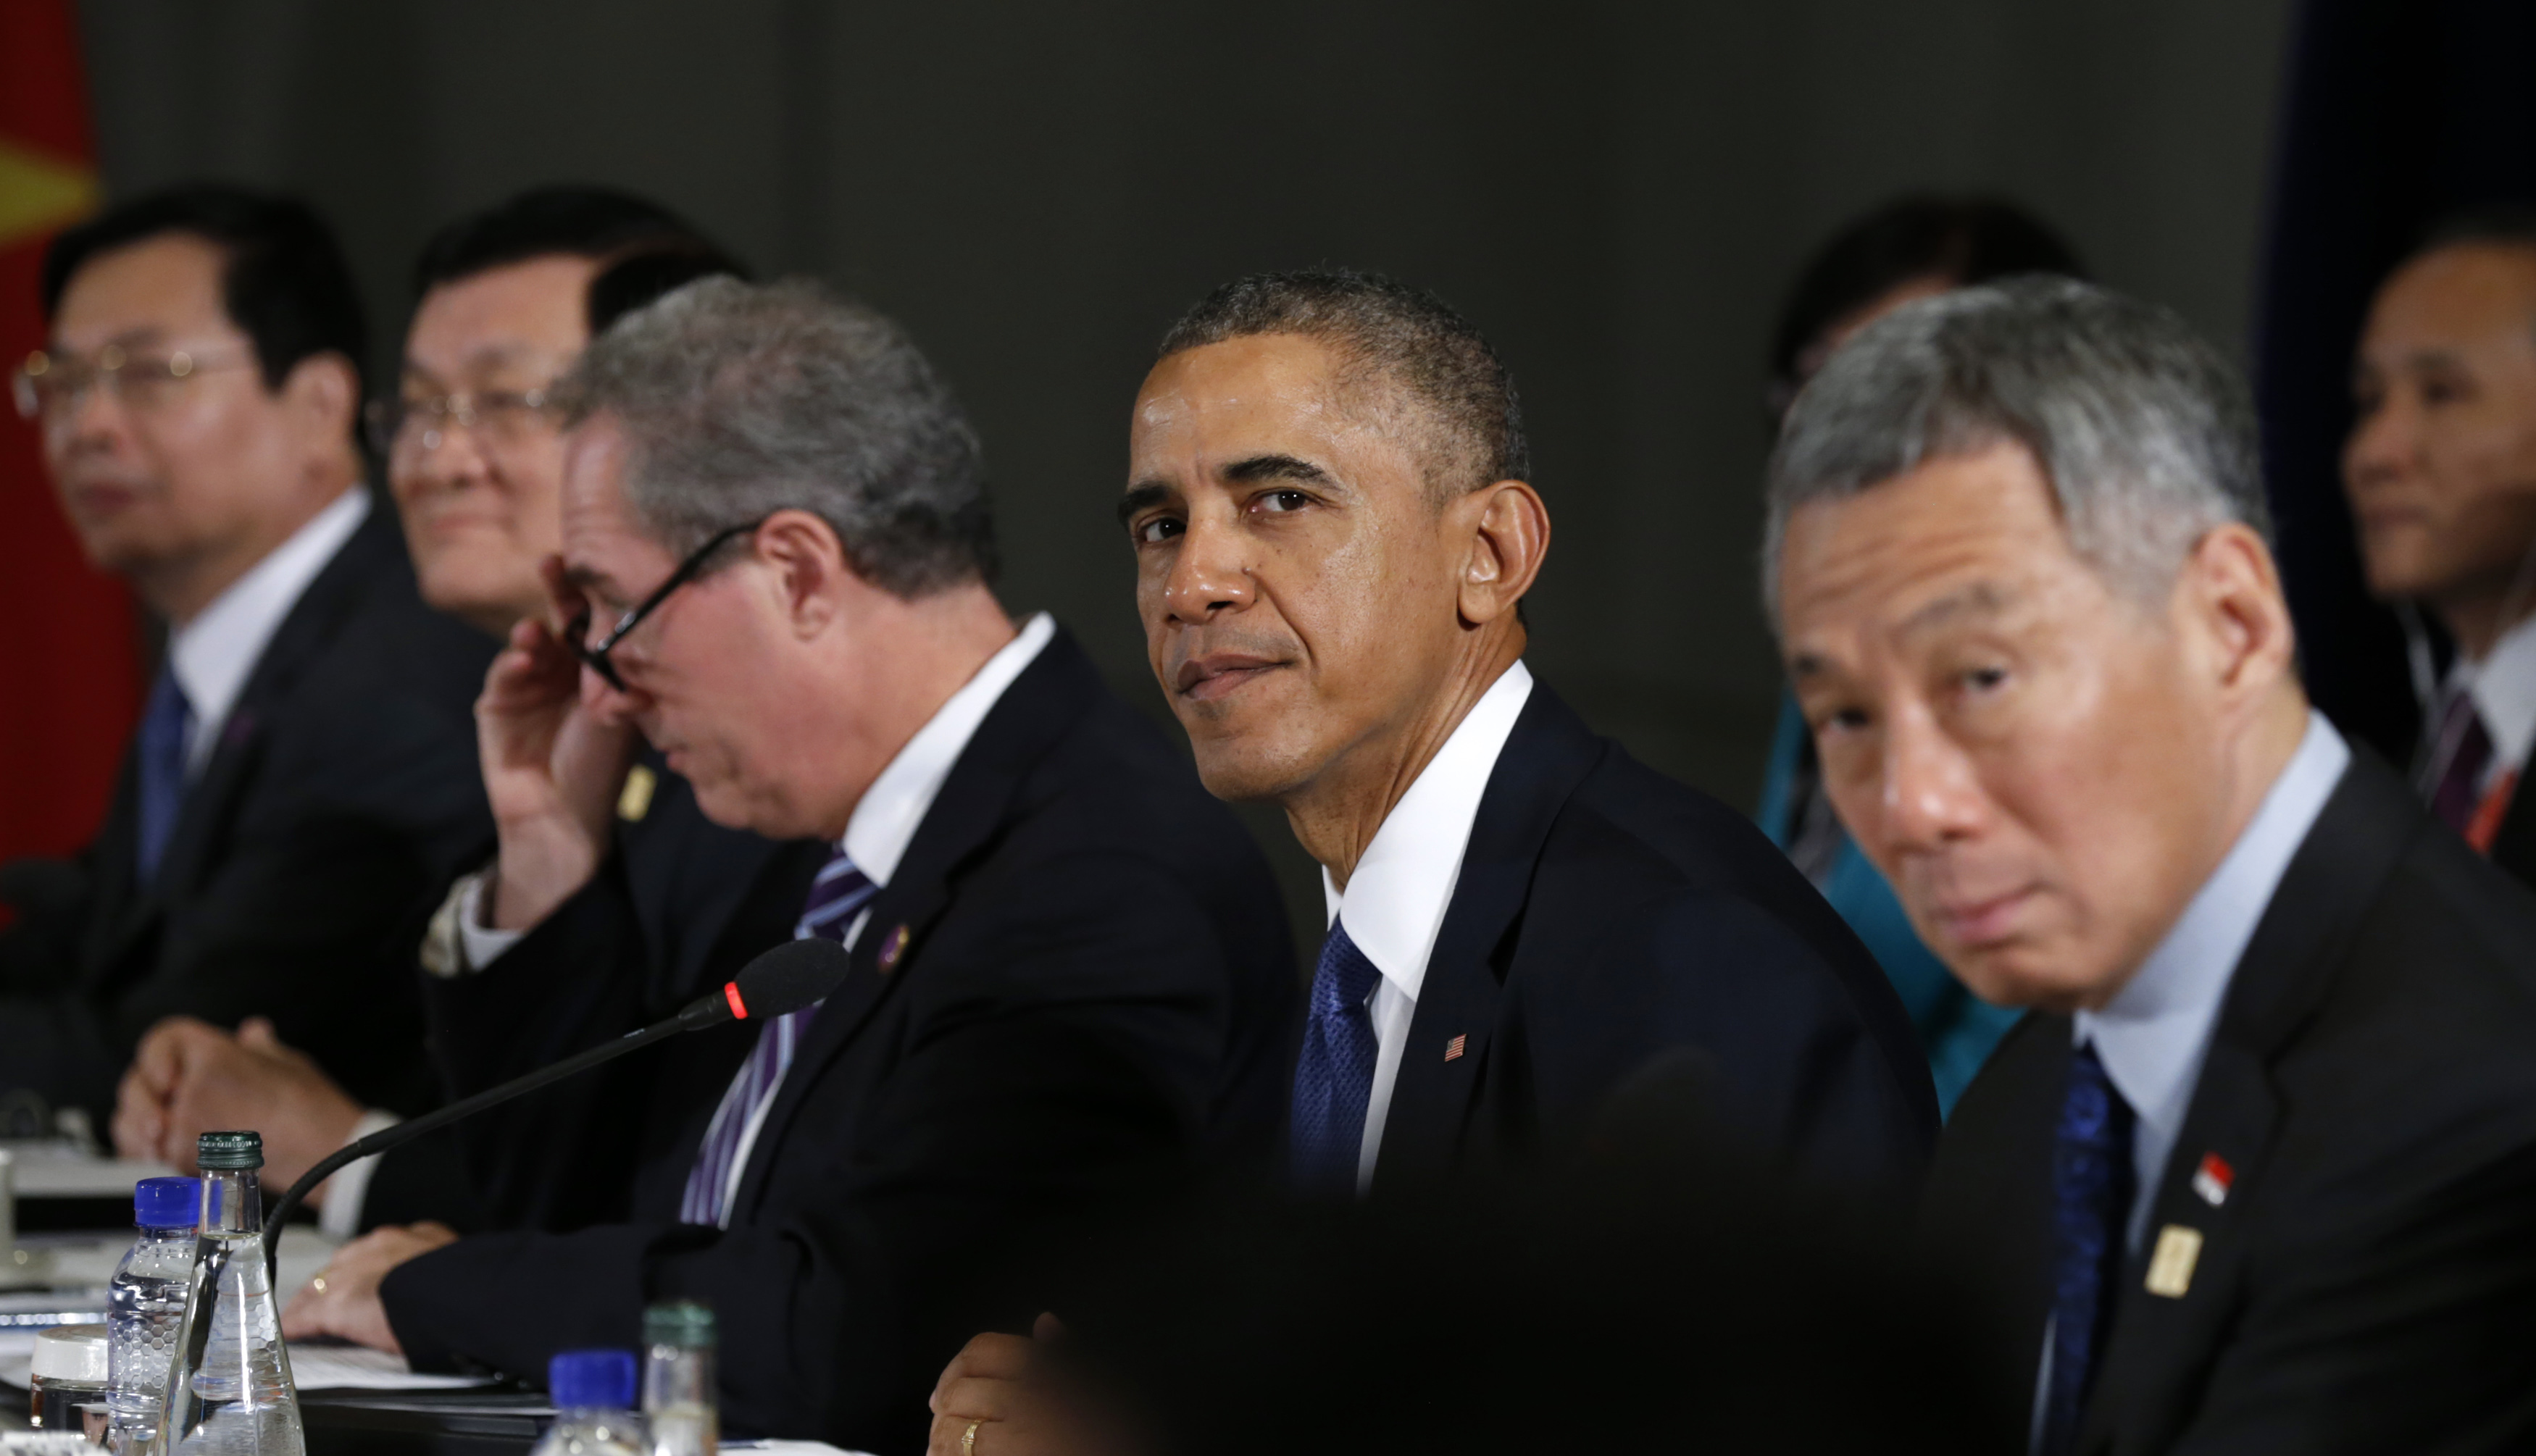 U.S. President Barack Obama meets with the leaders of the Trans-Pacific Partnership (TPP) countries in Beijing